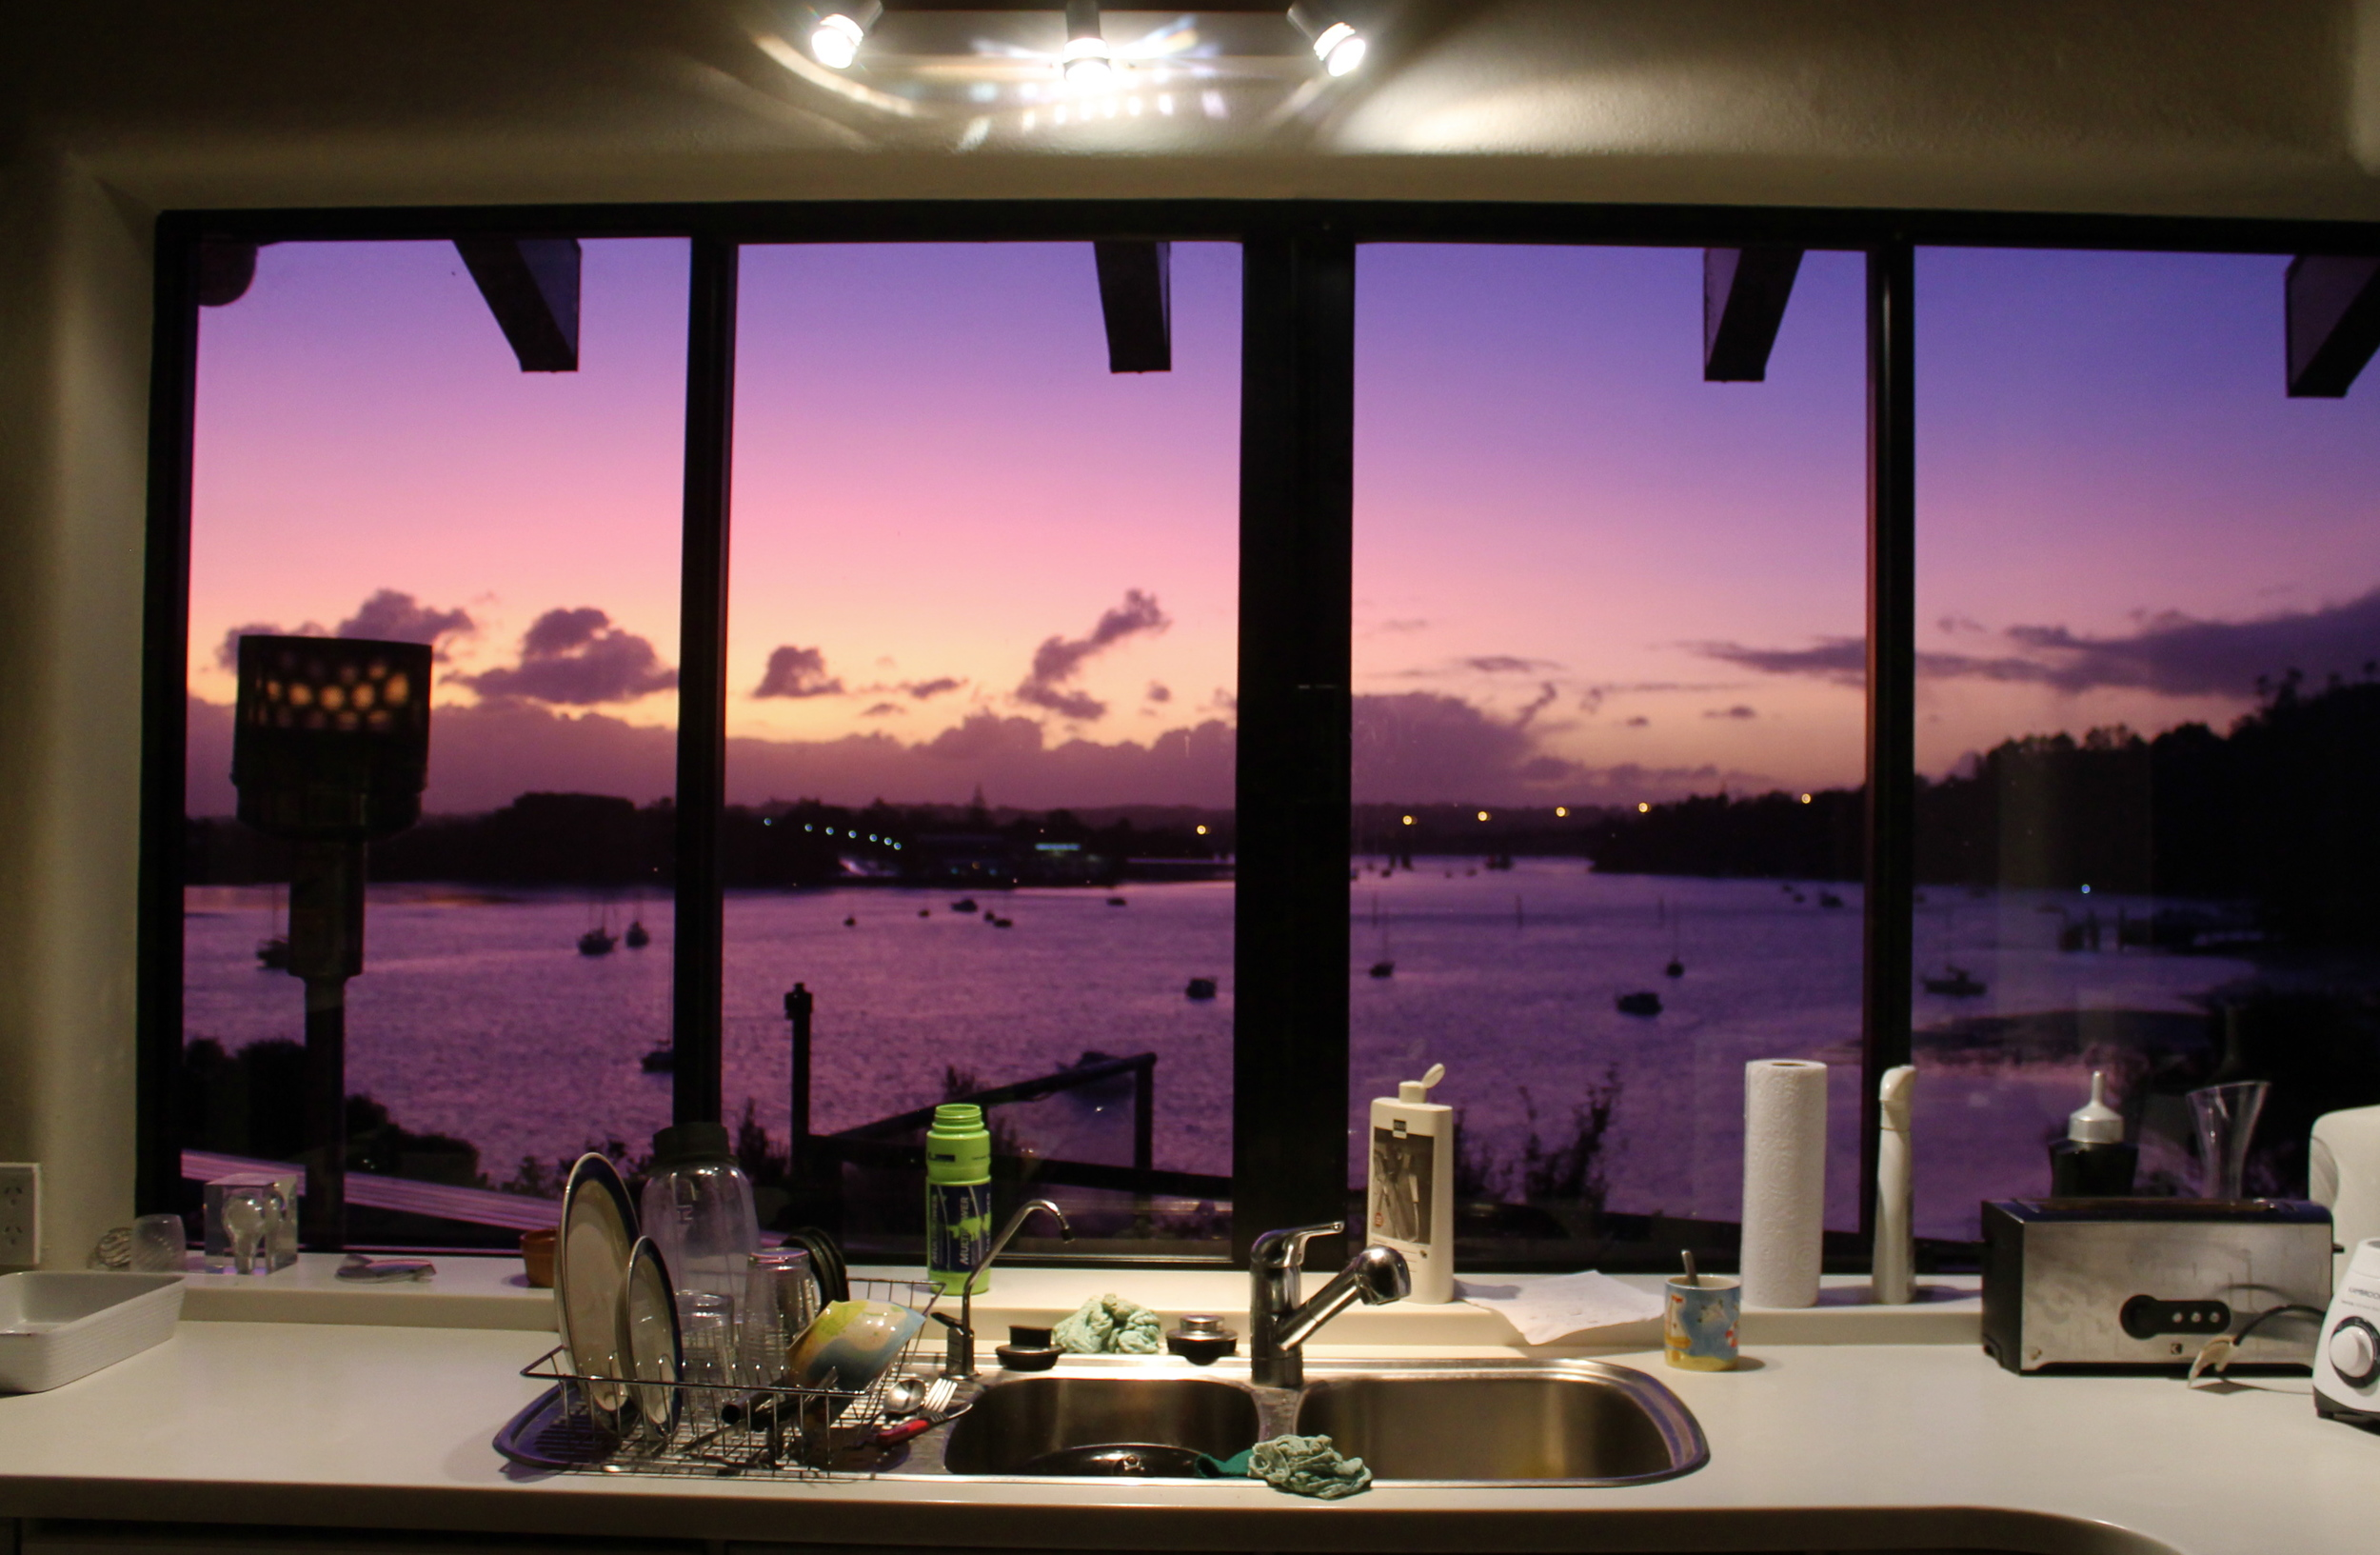 Violet sunsets make for a nice view while washing the dishes.